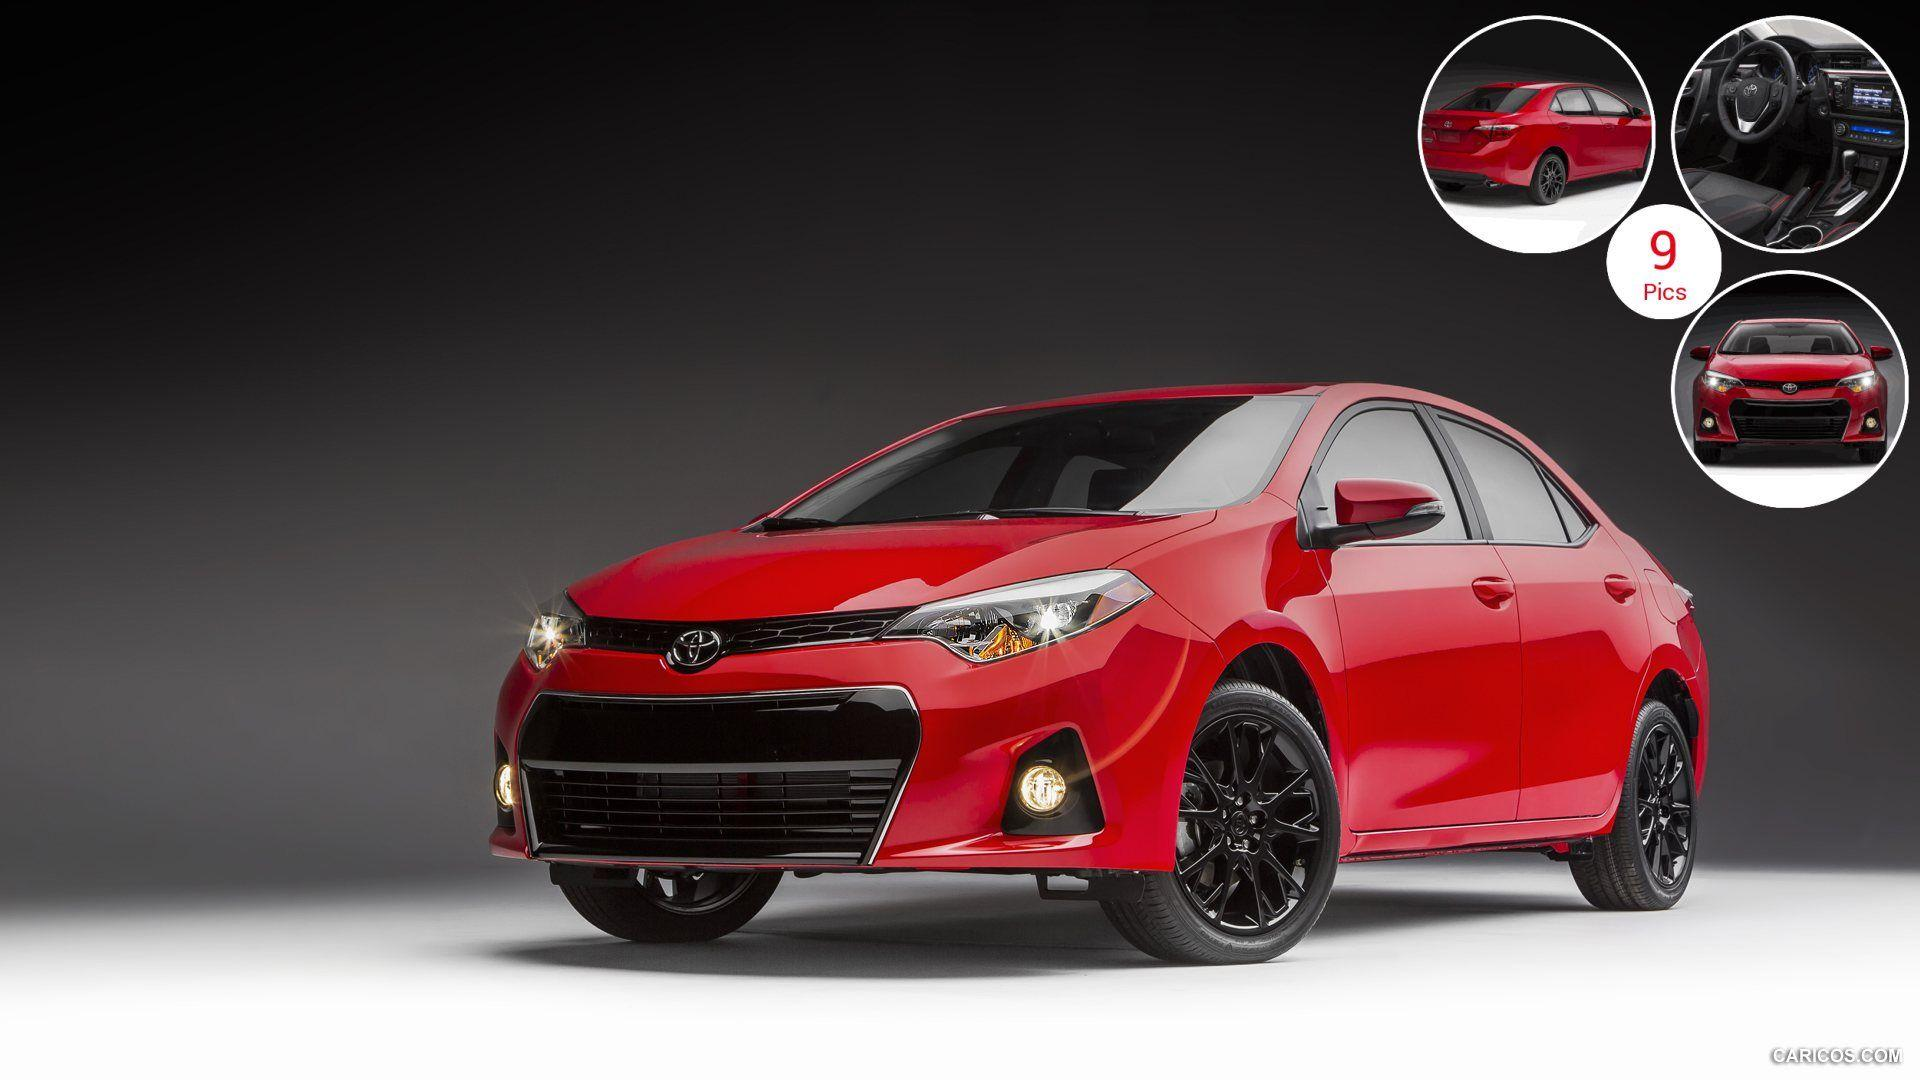 2016 Toyota Corolla Special Edition - Front | HD Wallpaper #1 ...